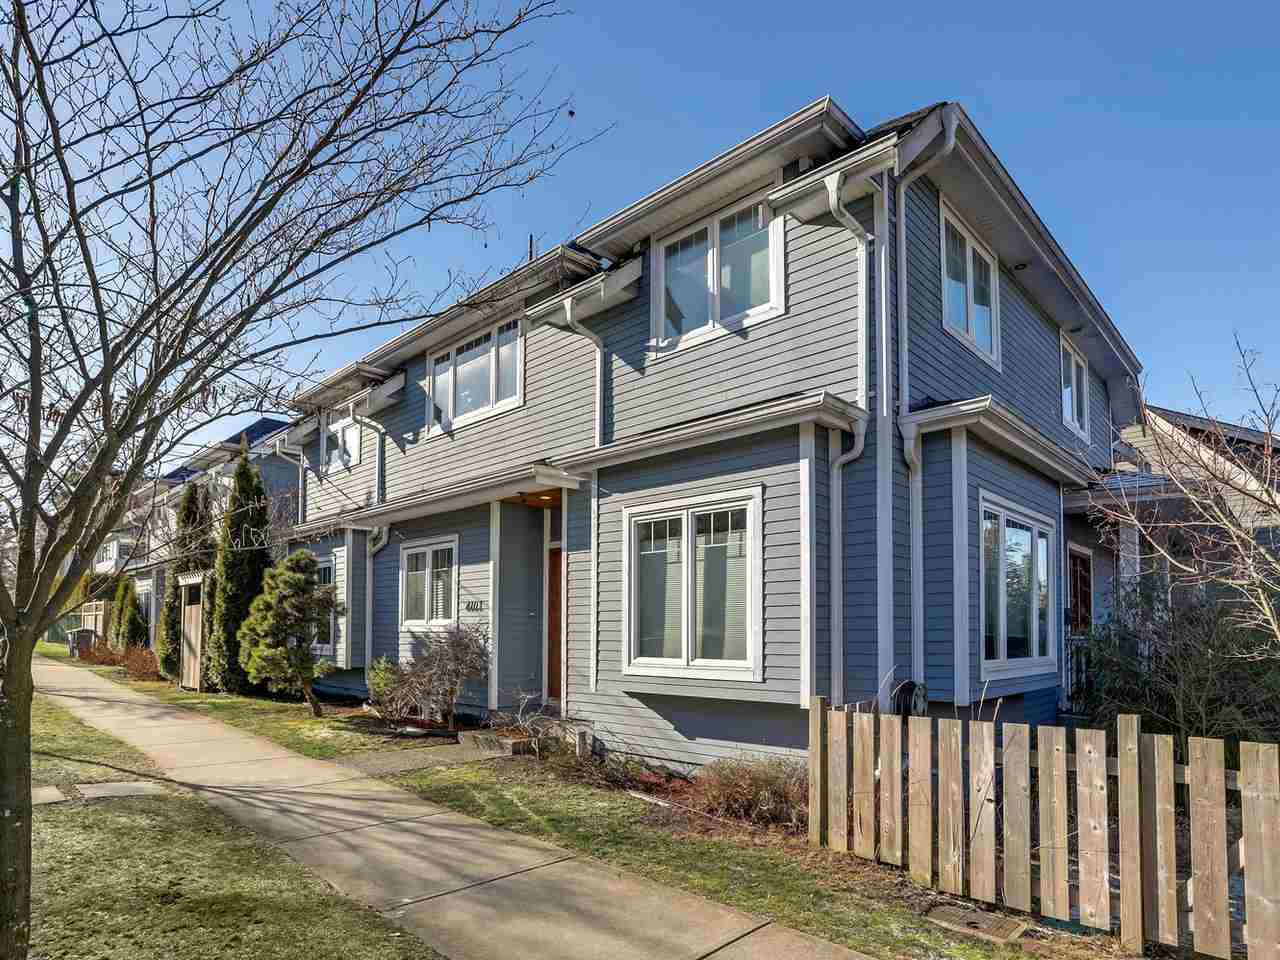 Main Photo: 4103 INVERNESS Street in Vancouver: Knight House 1/2 Duplex for sale (Vancouver East)  : MLS®# R2339162